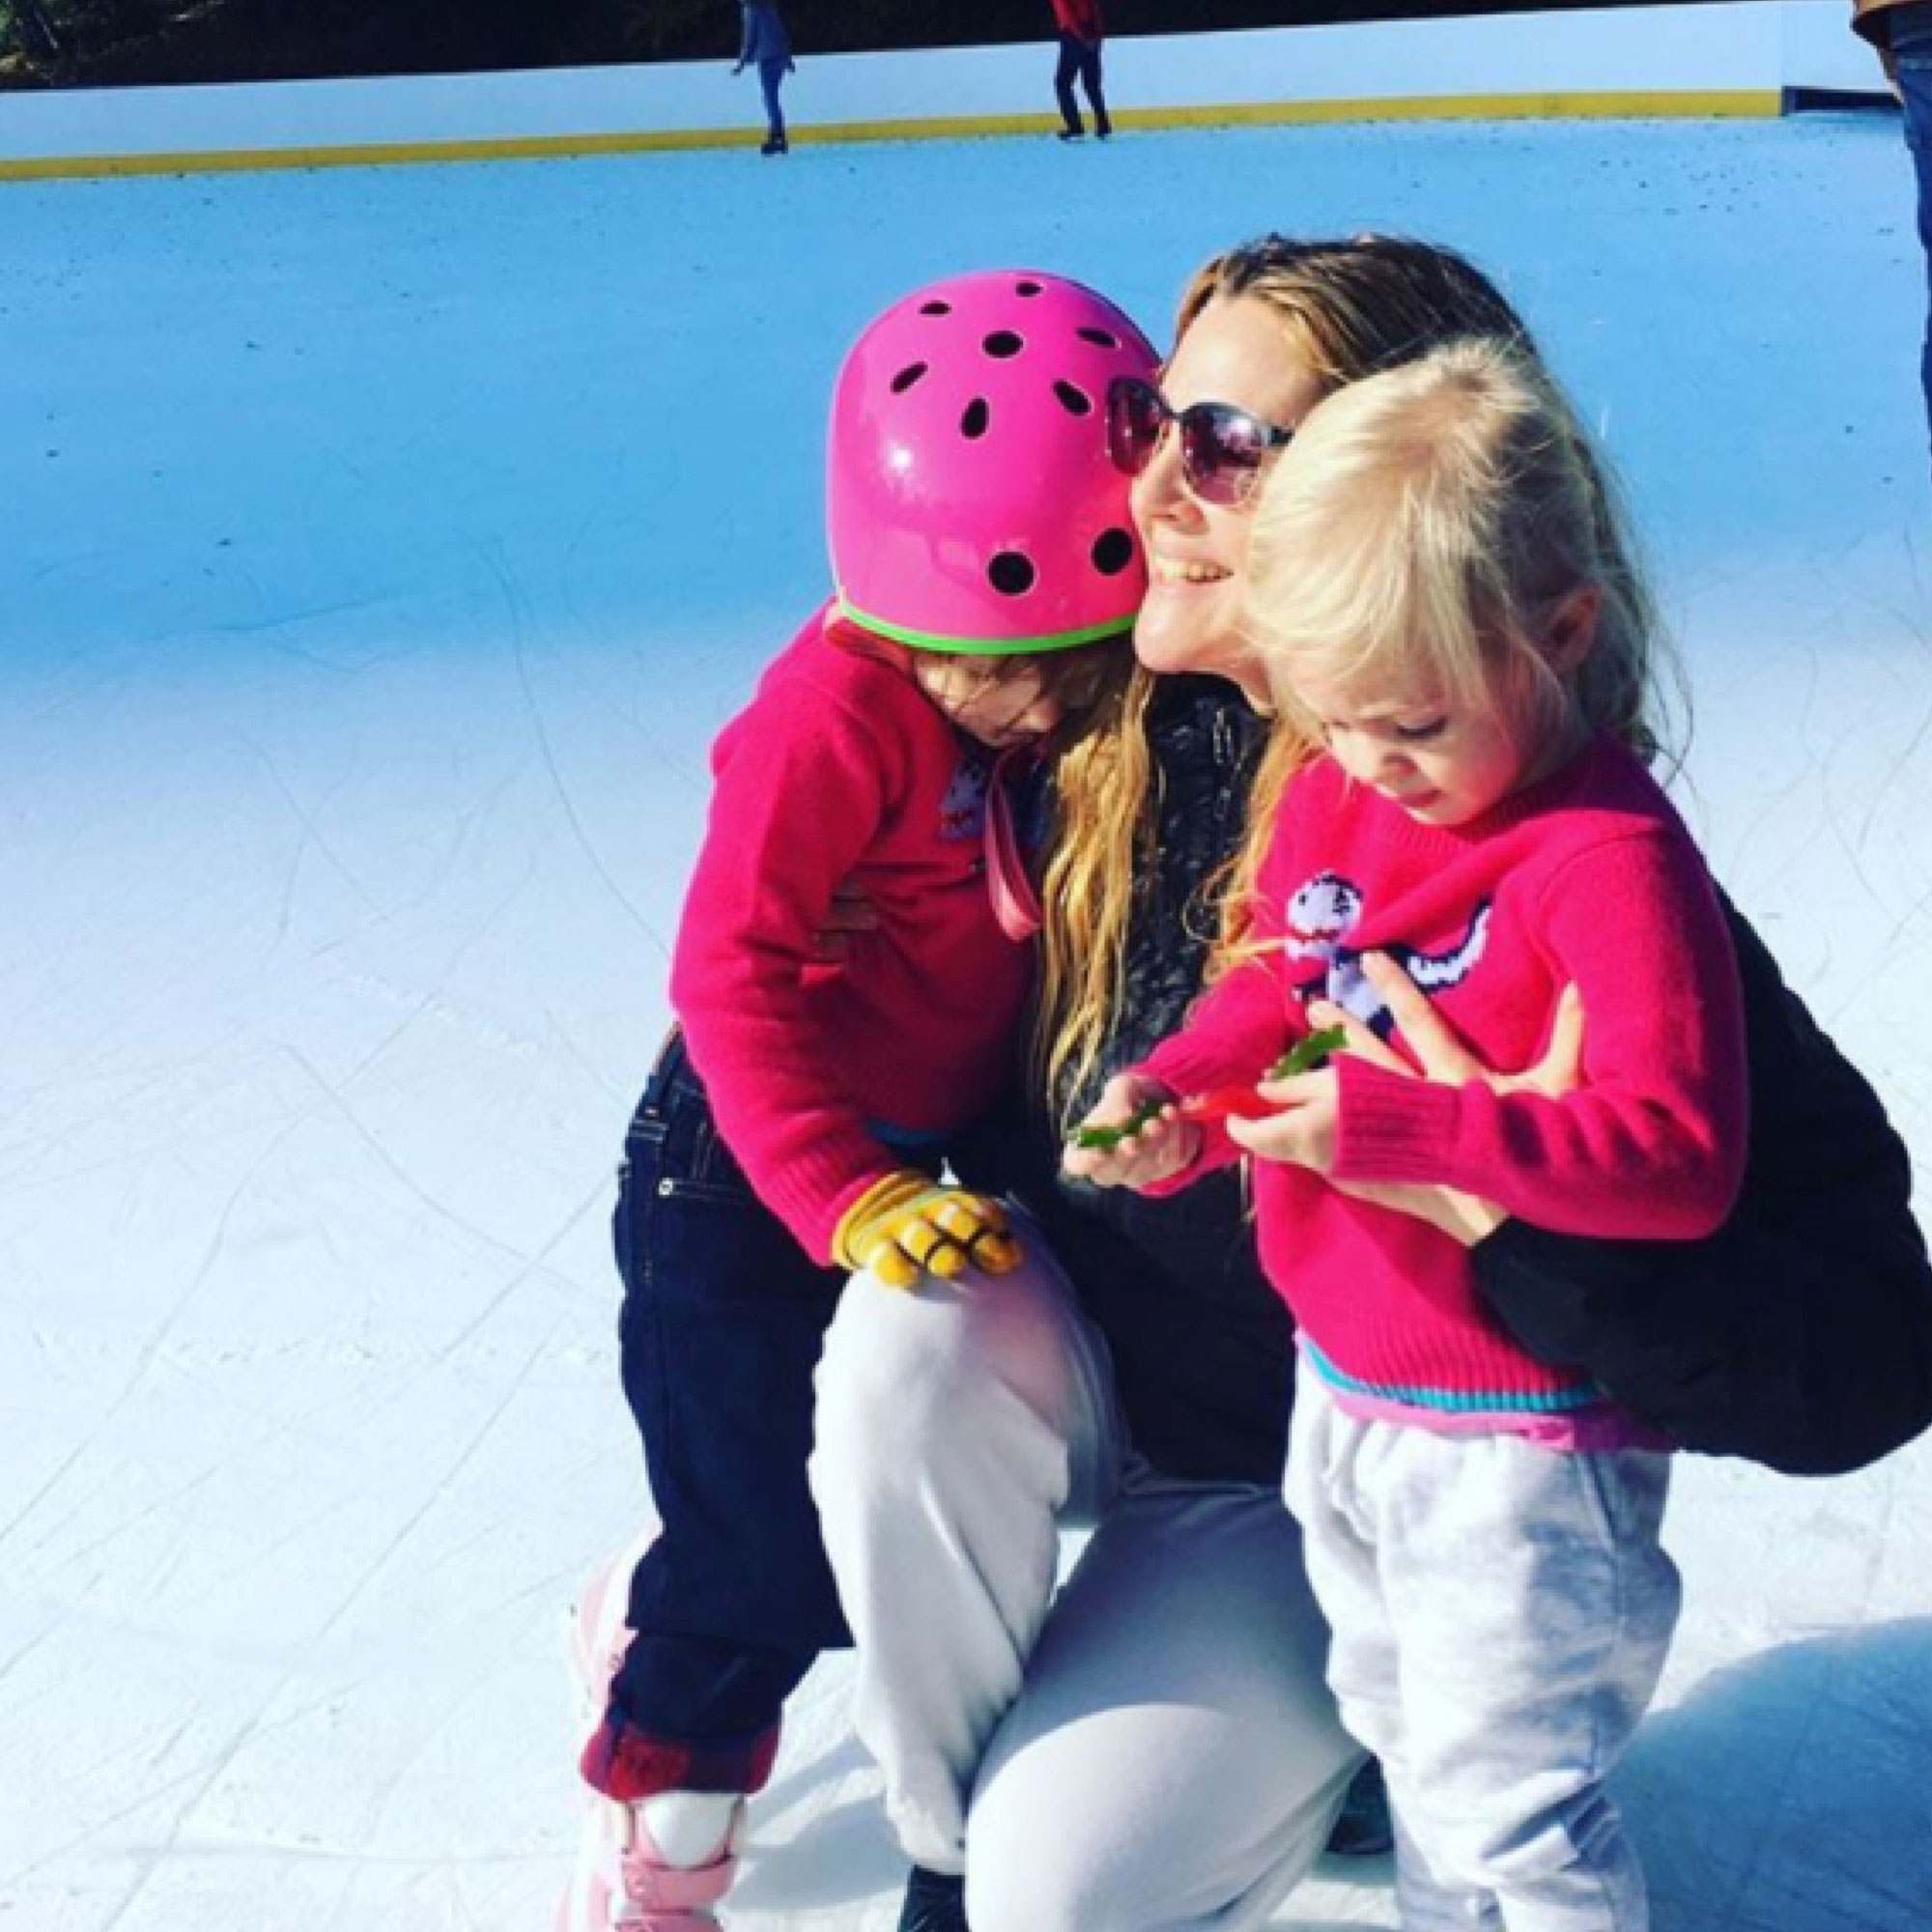 nov. 20, 2016 drewbarrymore#people I love these are the loves of my life. #myolive #myfrankie all I wanted to do this week was reflect. Think about people and moments that make life make sense to me. That make life amazing. That motivate me to be my best self. I feel so lucky. And after just living the last few days in all things positive, it was good for me to reflect on things that truly make me happy. Drew Barrymore and his kids on her instagram page